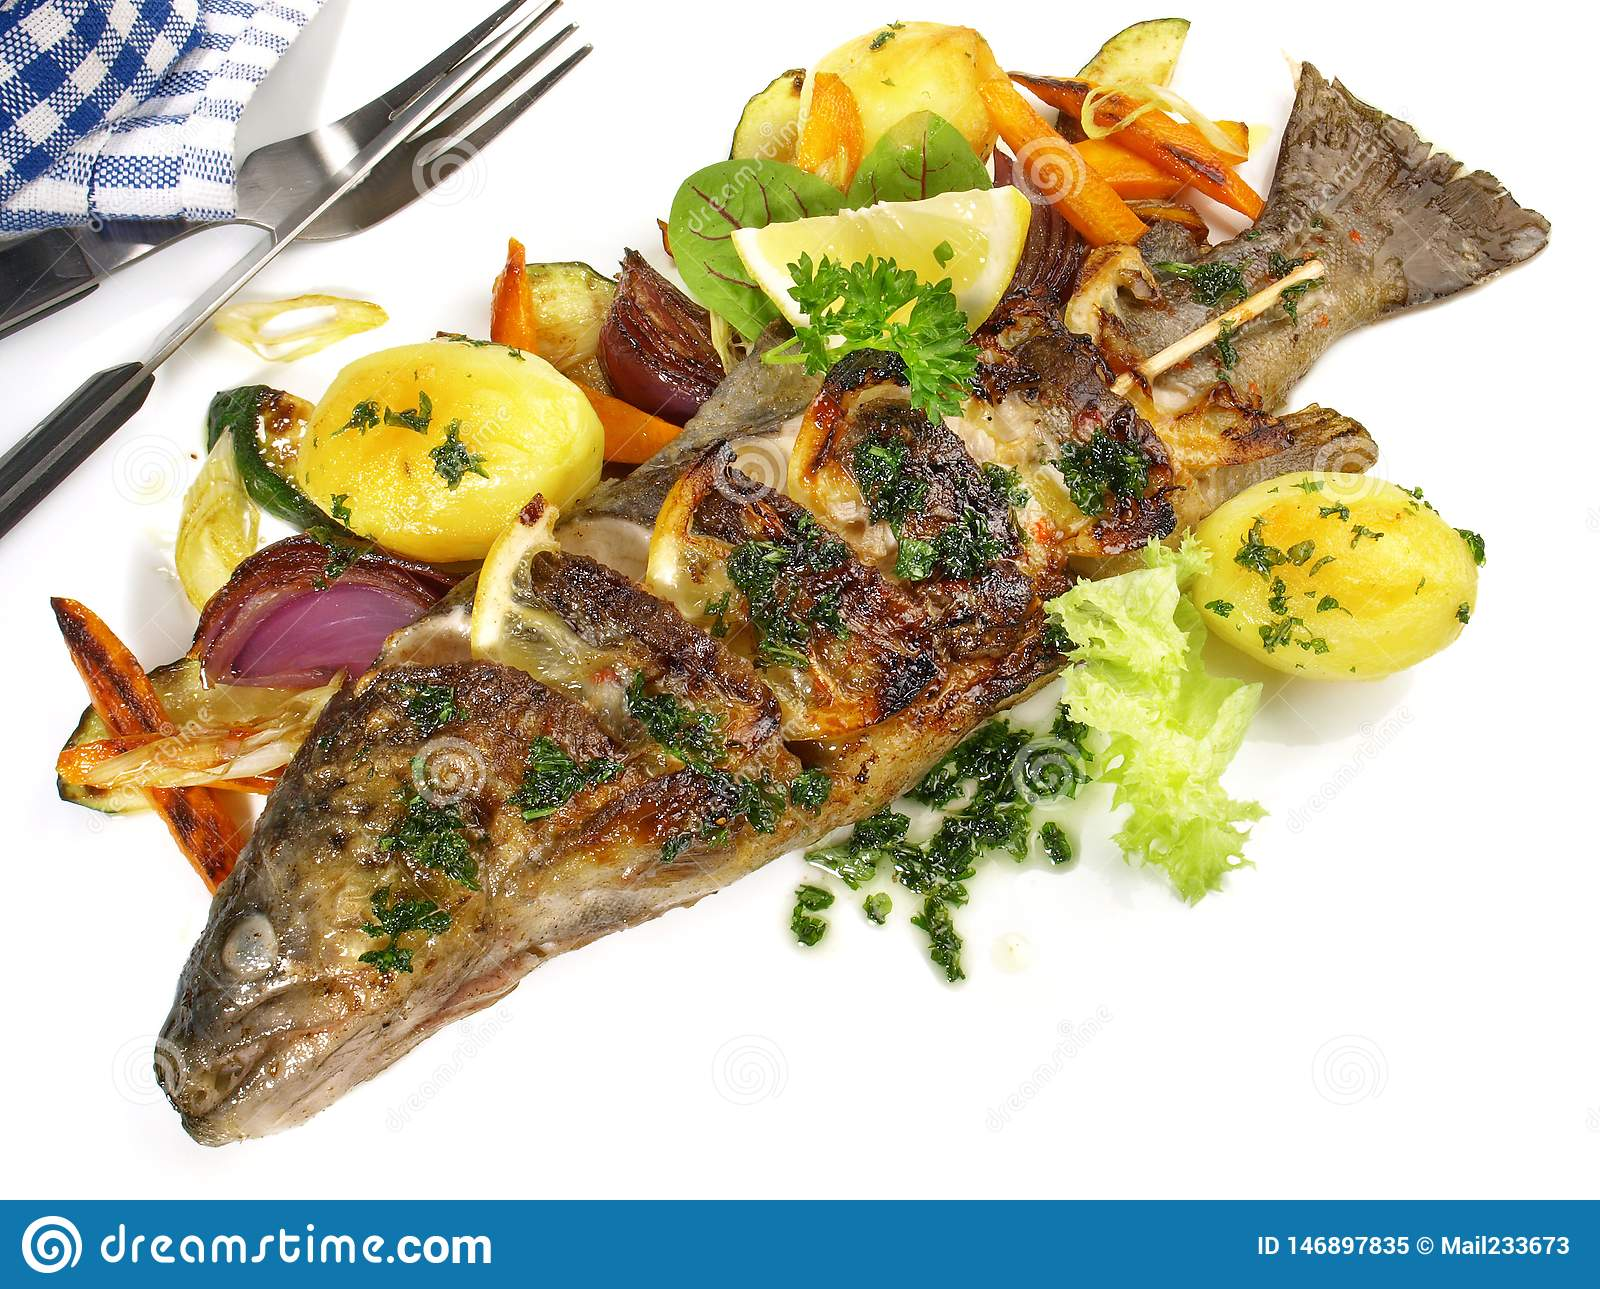 Grilled Fish - Rainbow Trout